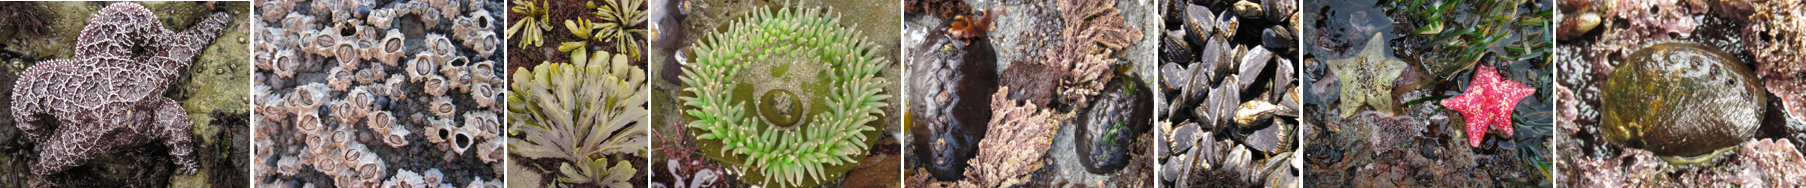 Pacific Rocky Intertidal Monitoring Banner Image - Full